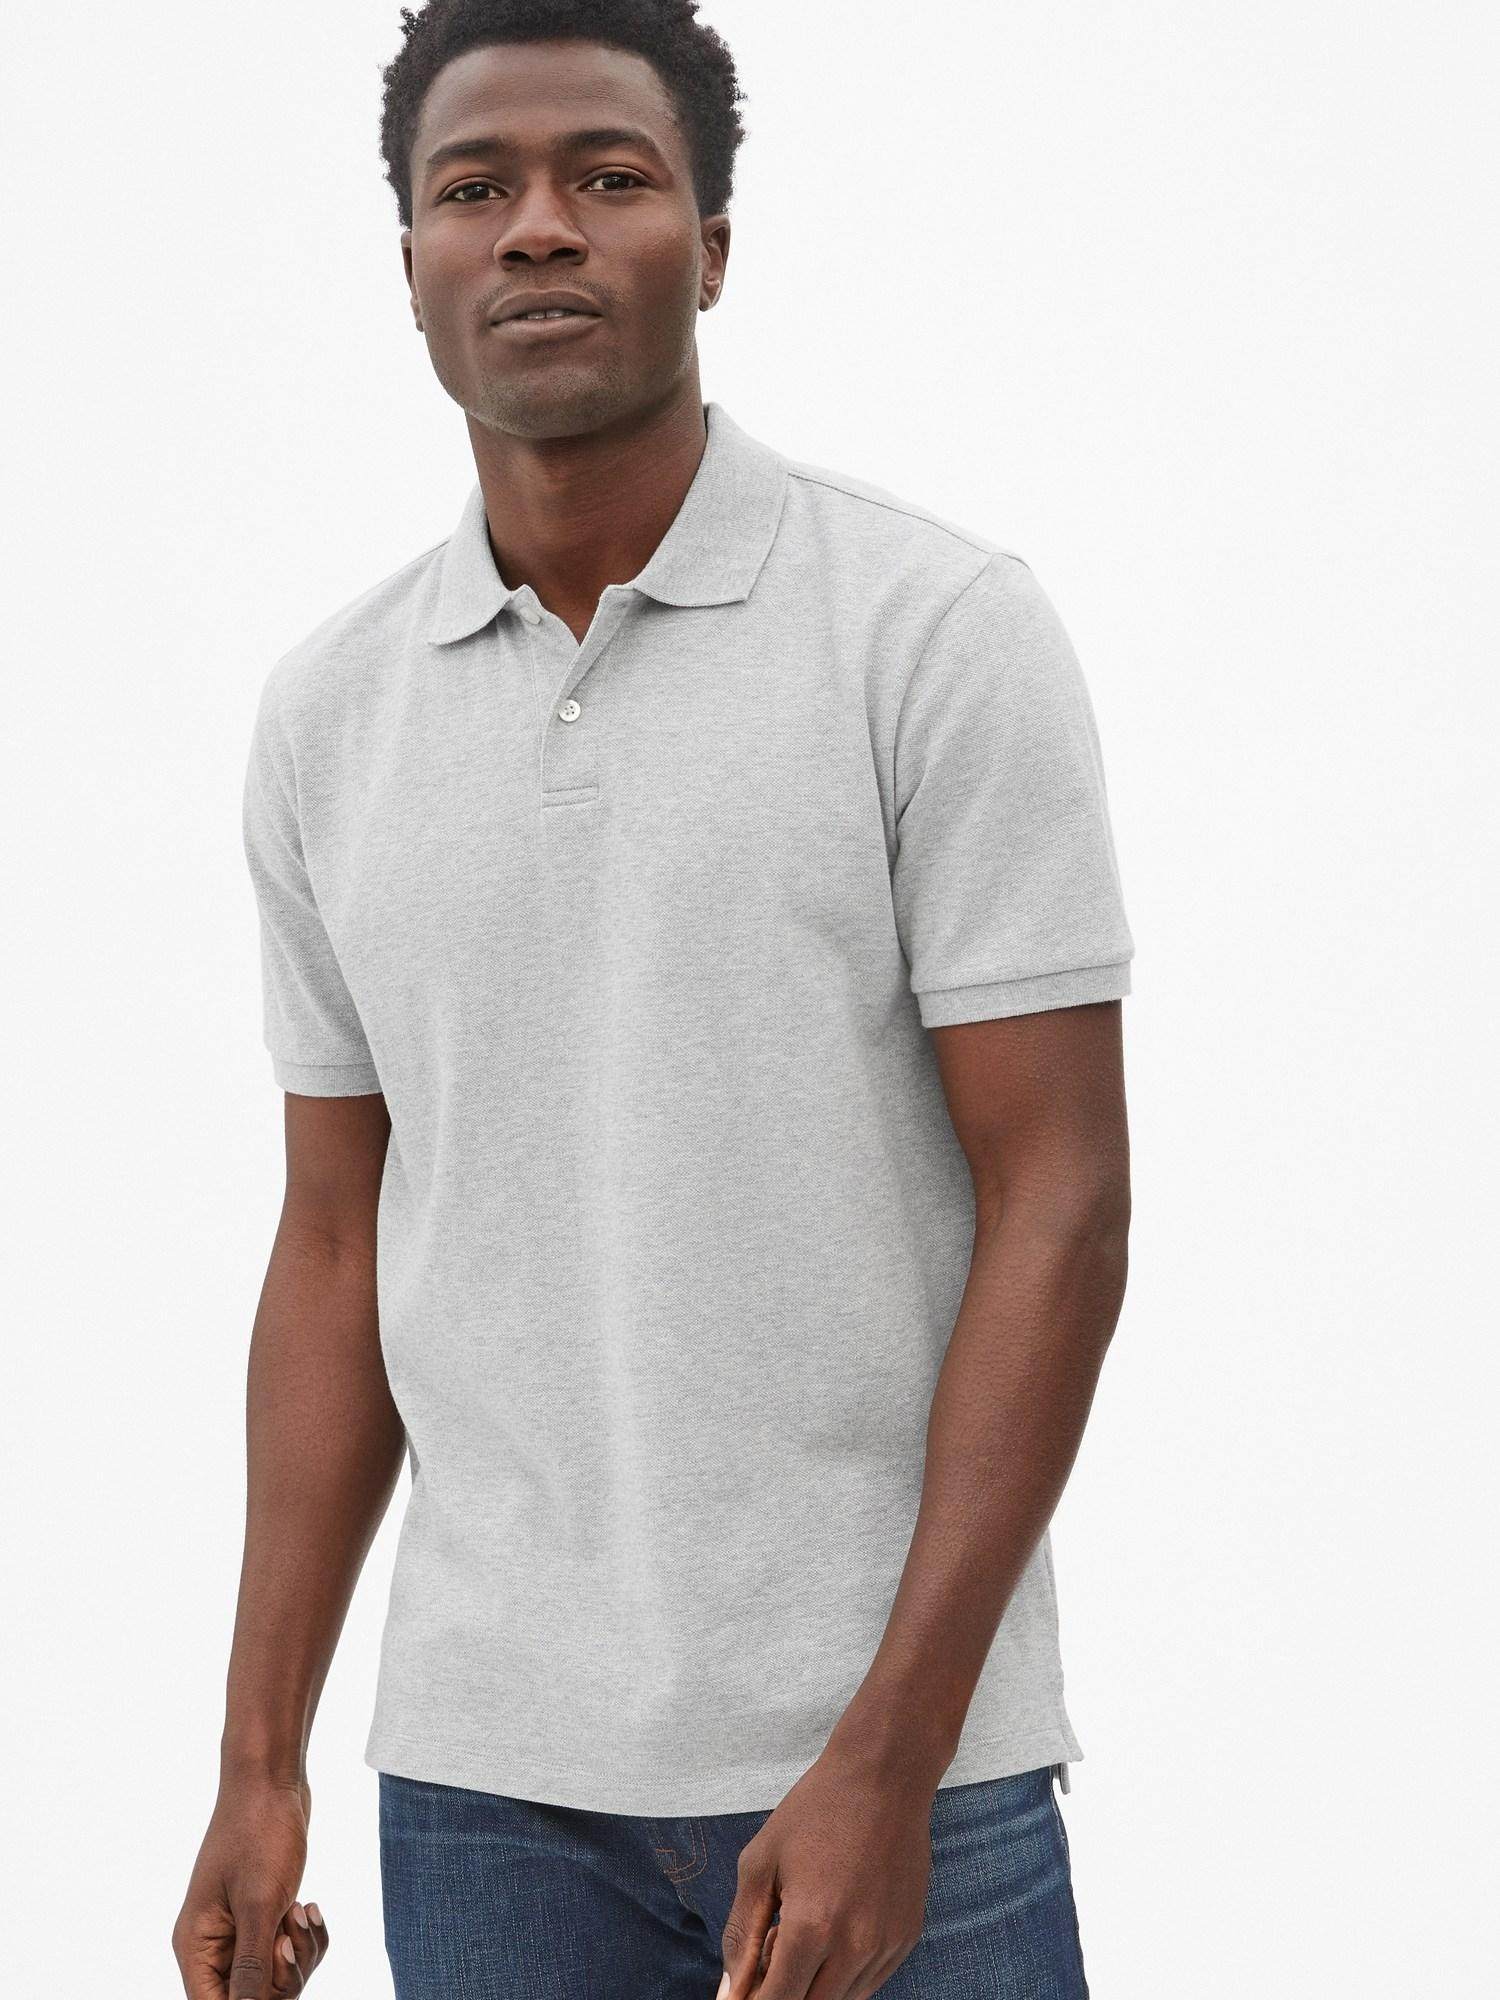 19b2ecfa7 Gap All Day Pique Polo Shirt in Gray for Men - Lyst